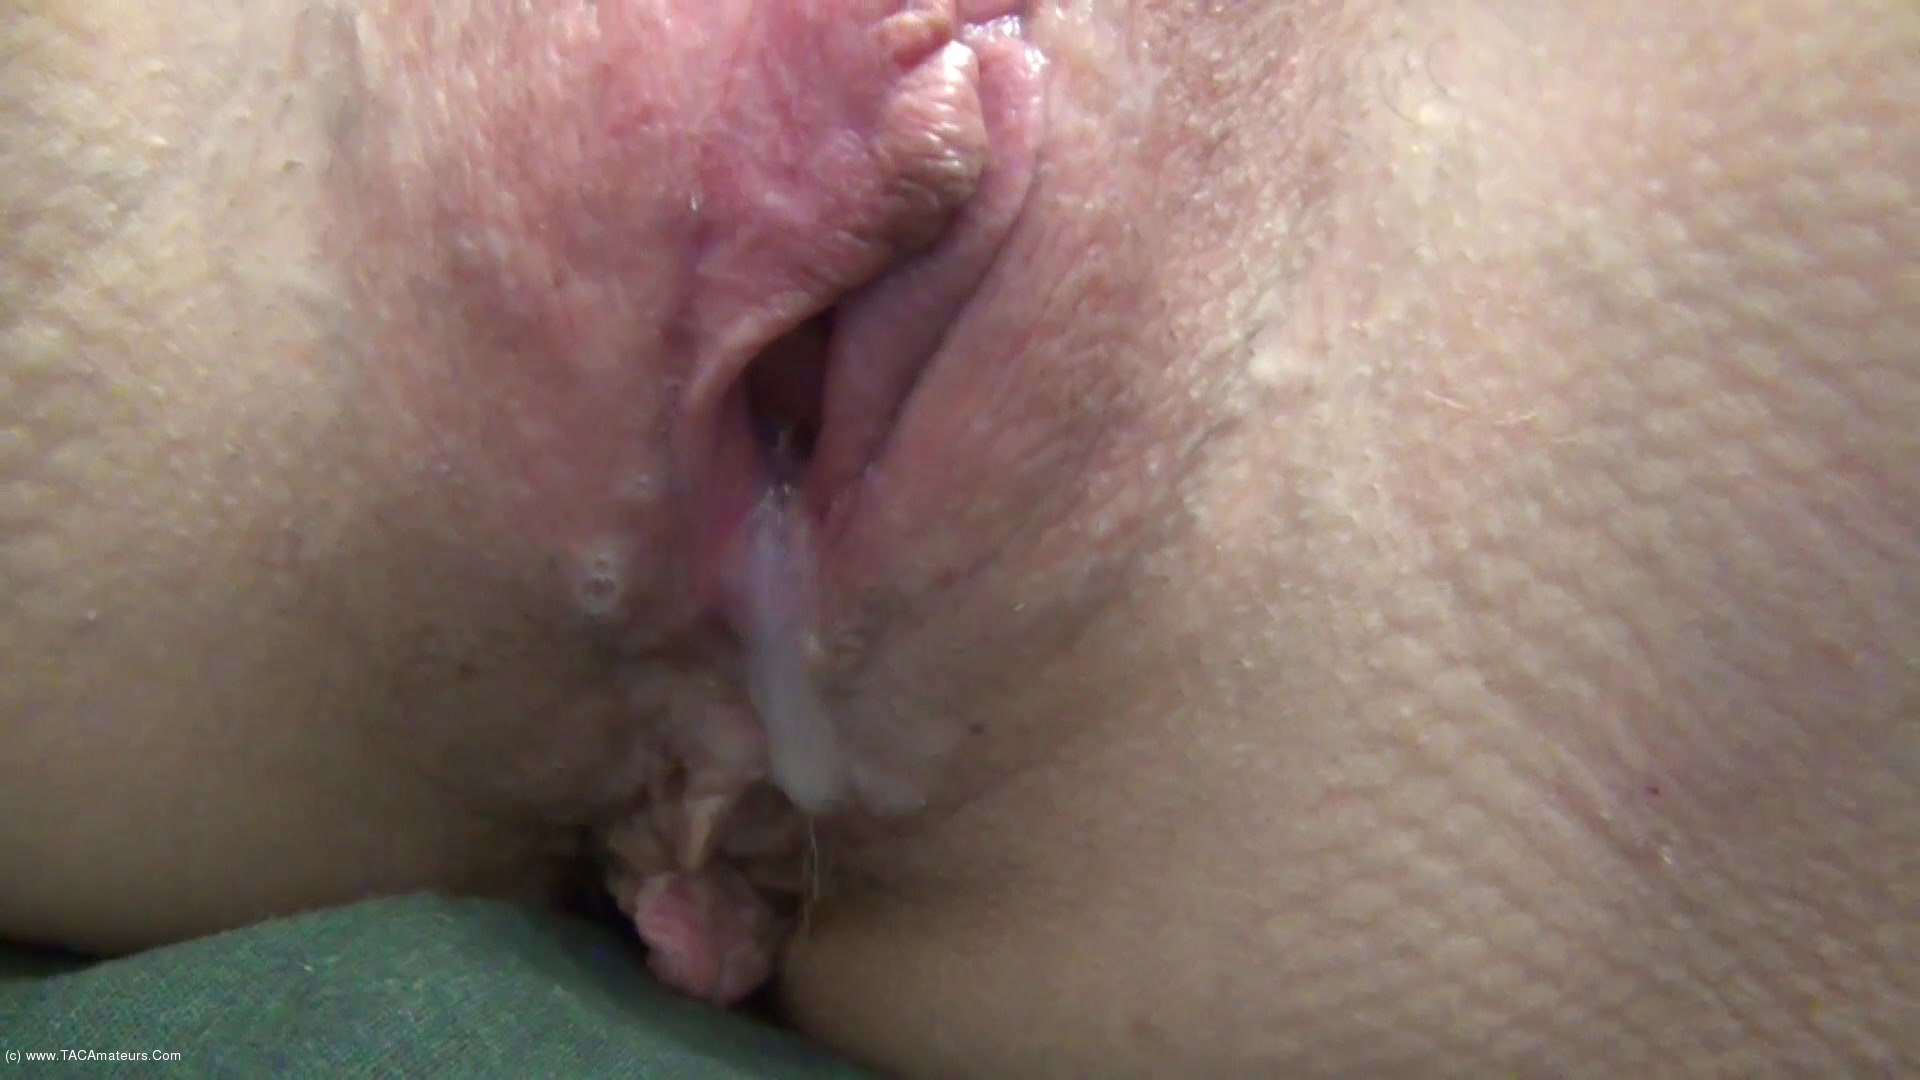 HotMilf - Creampie In Nylons scene 0